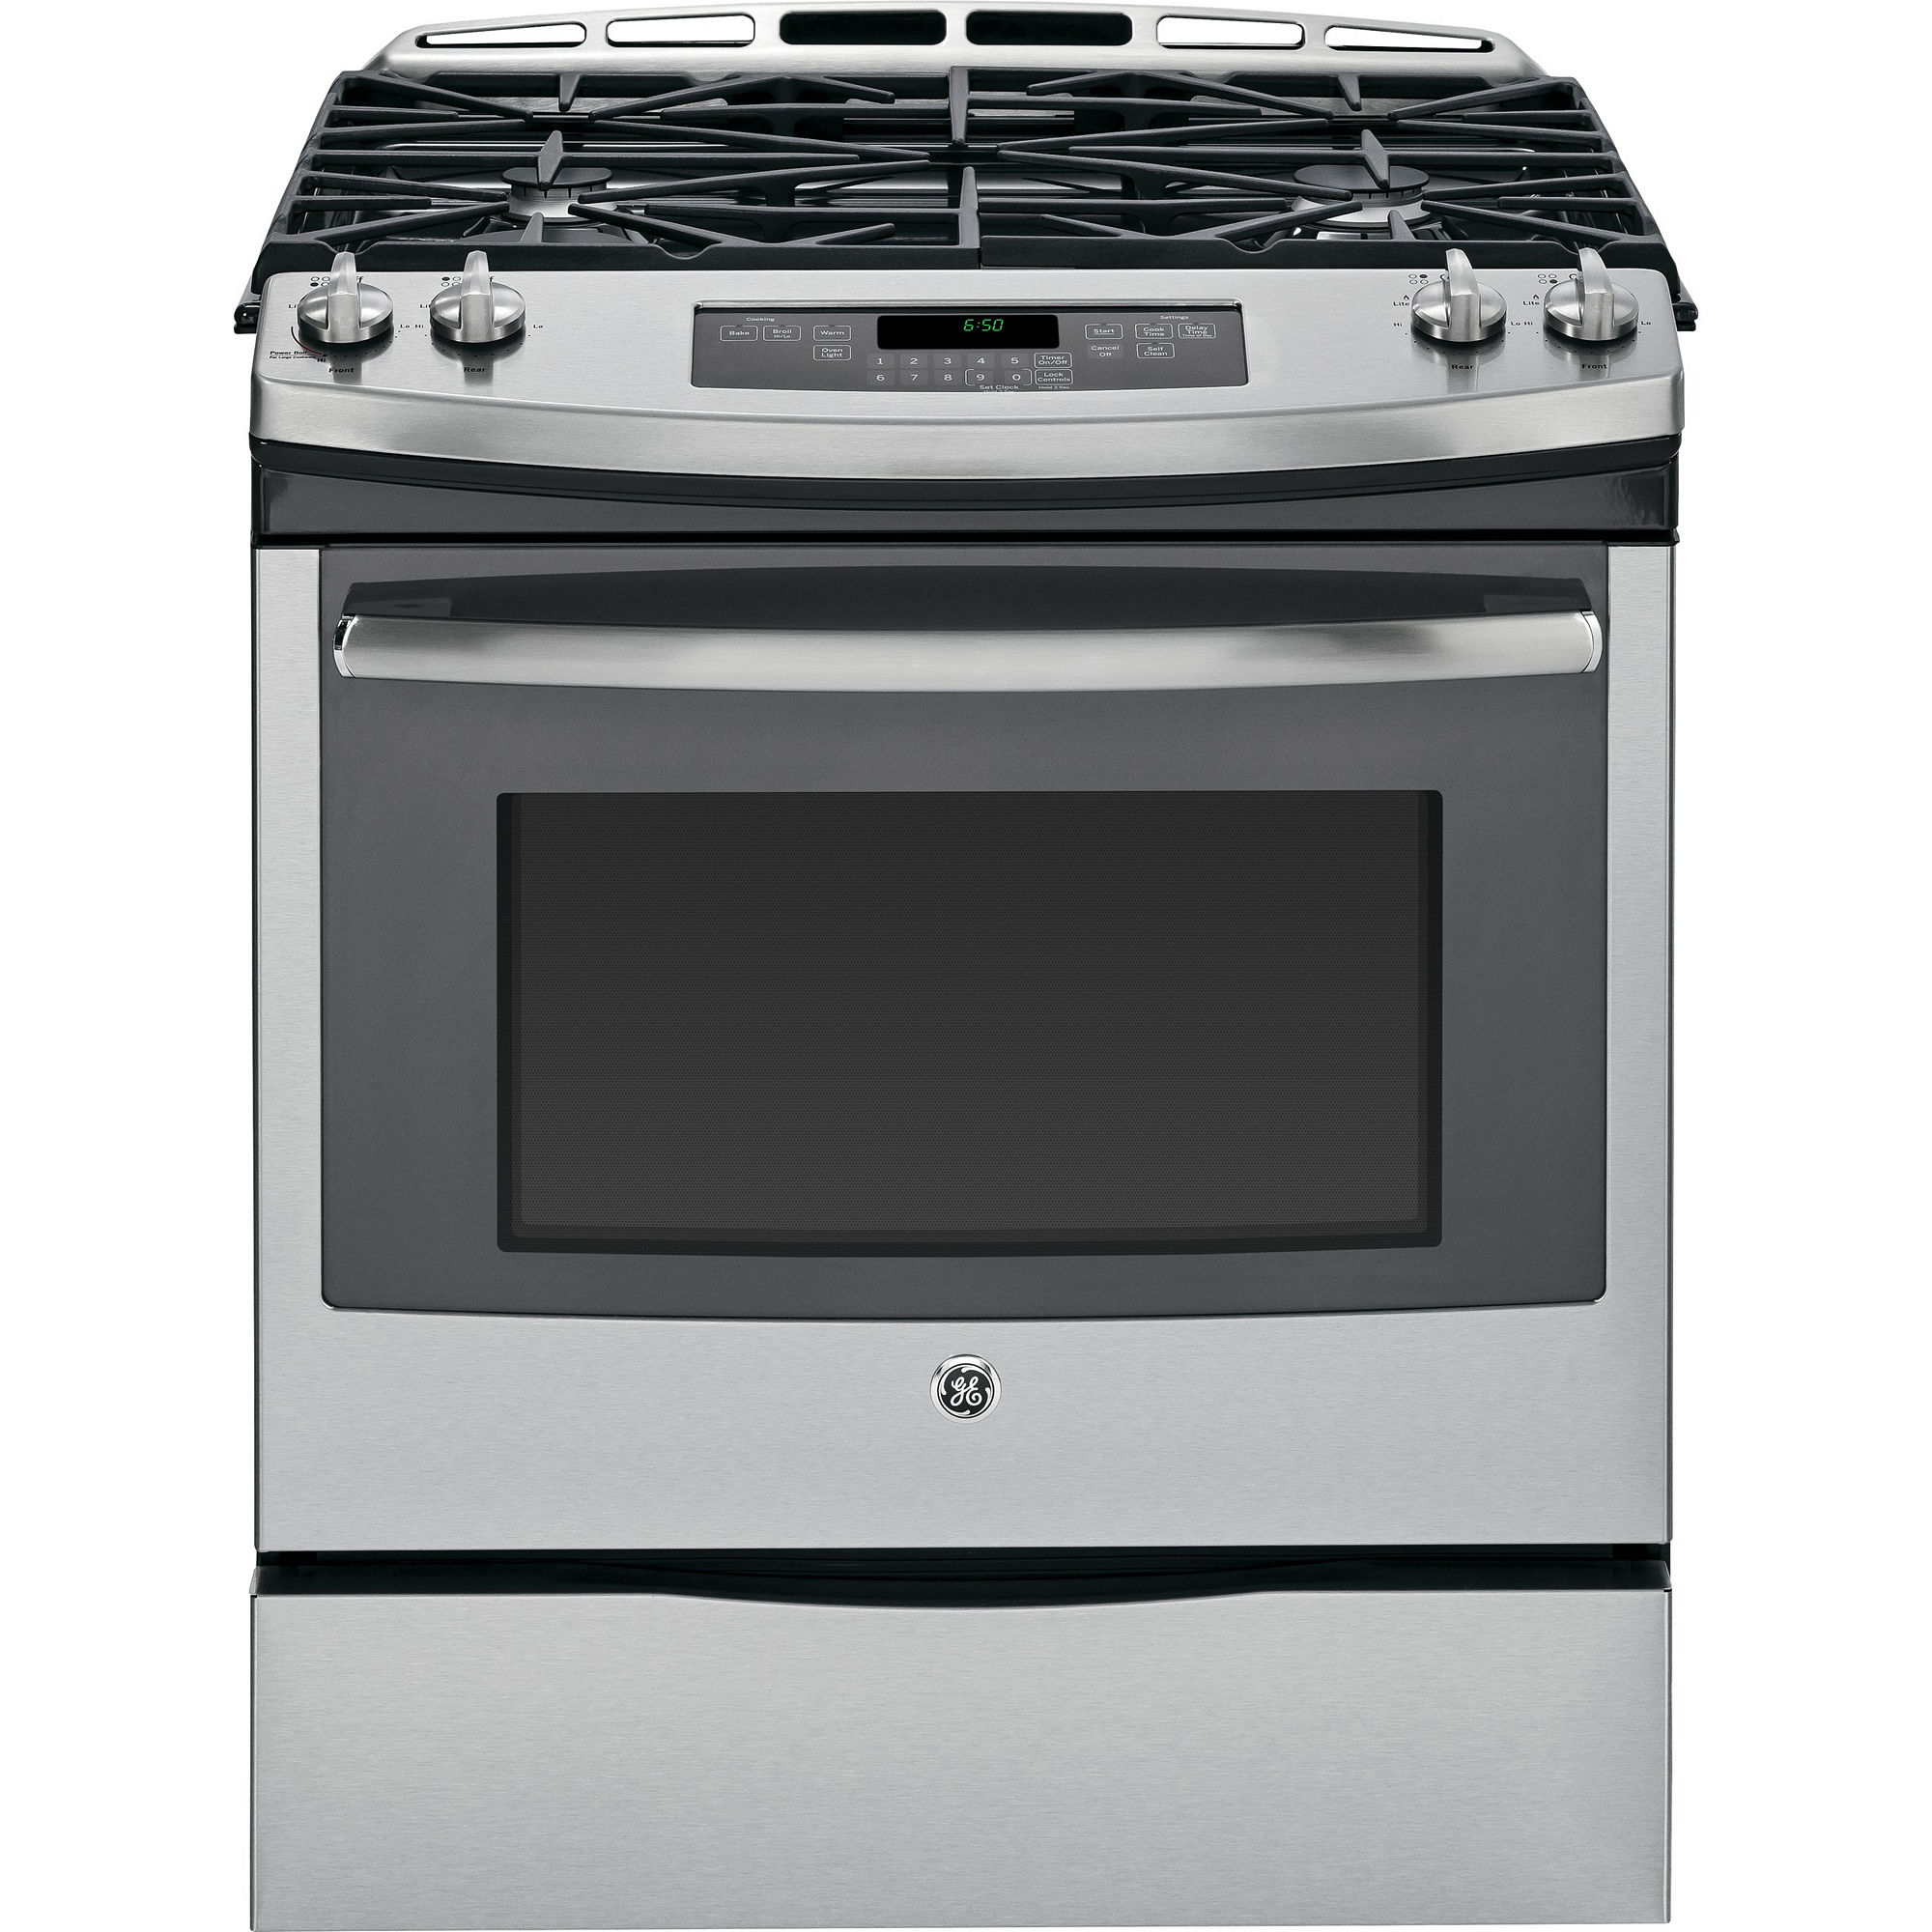 "GE 30"" 5.6 Slide-In Gas Range - JGS650SEFSS"